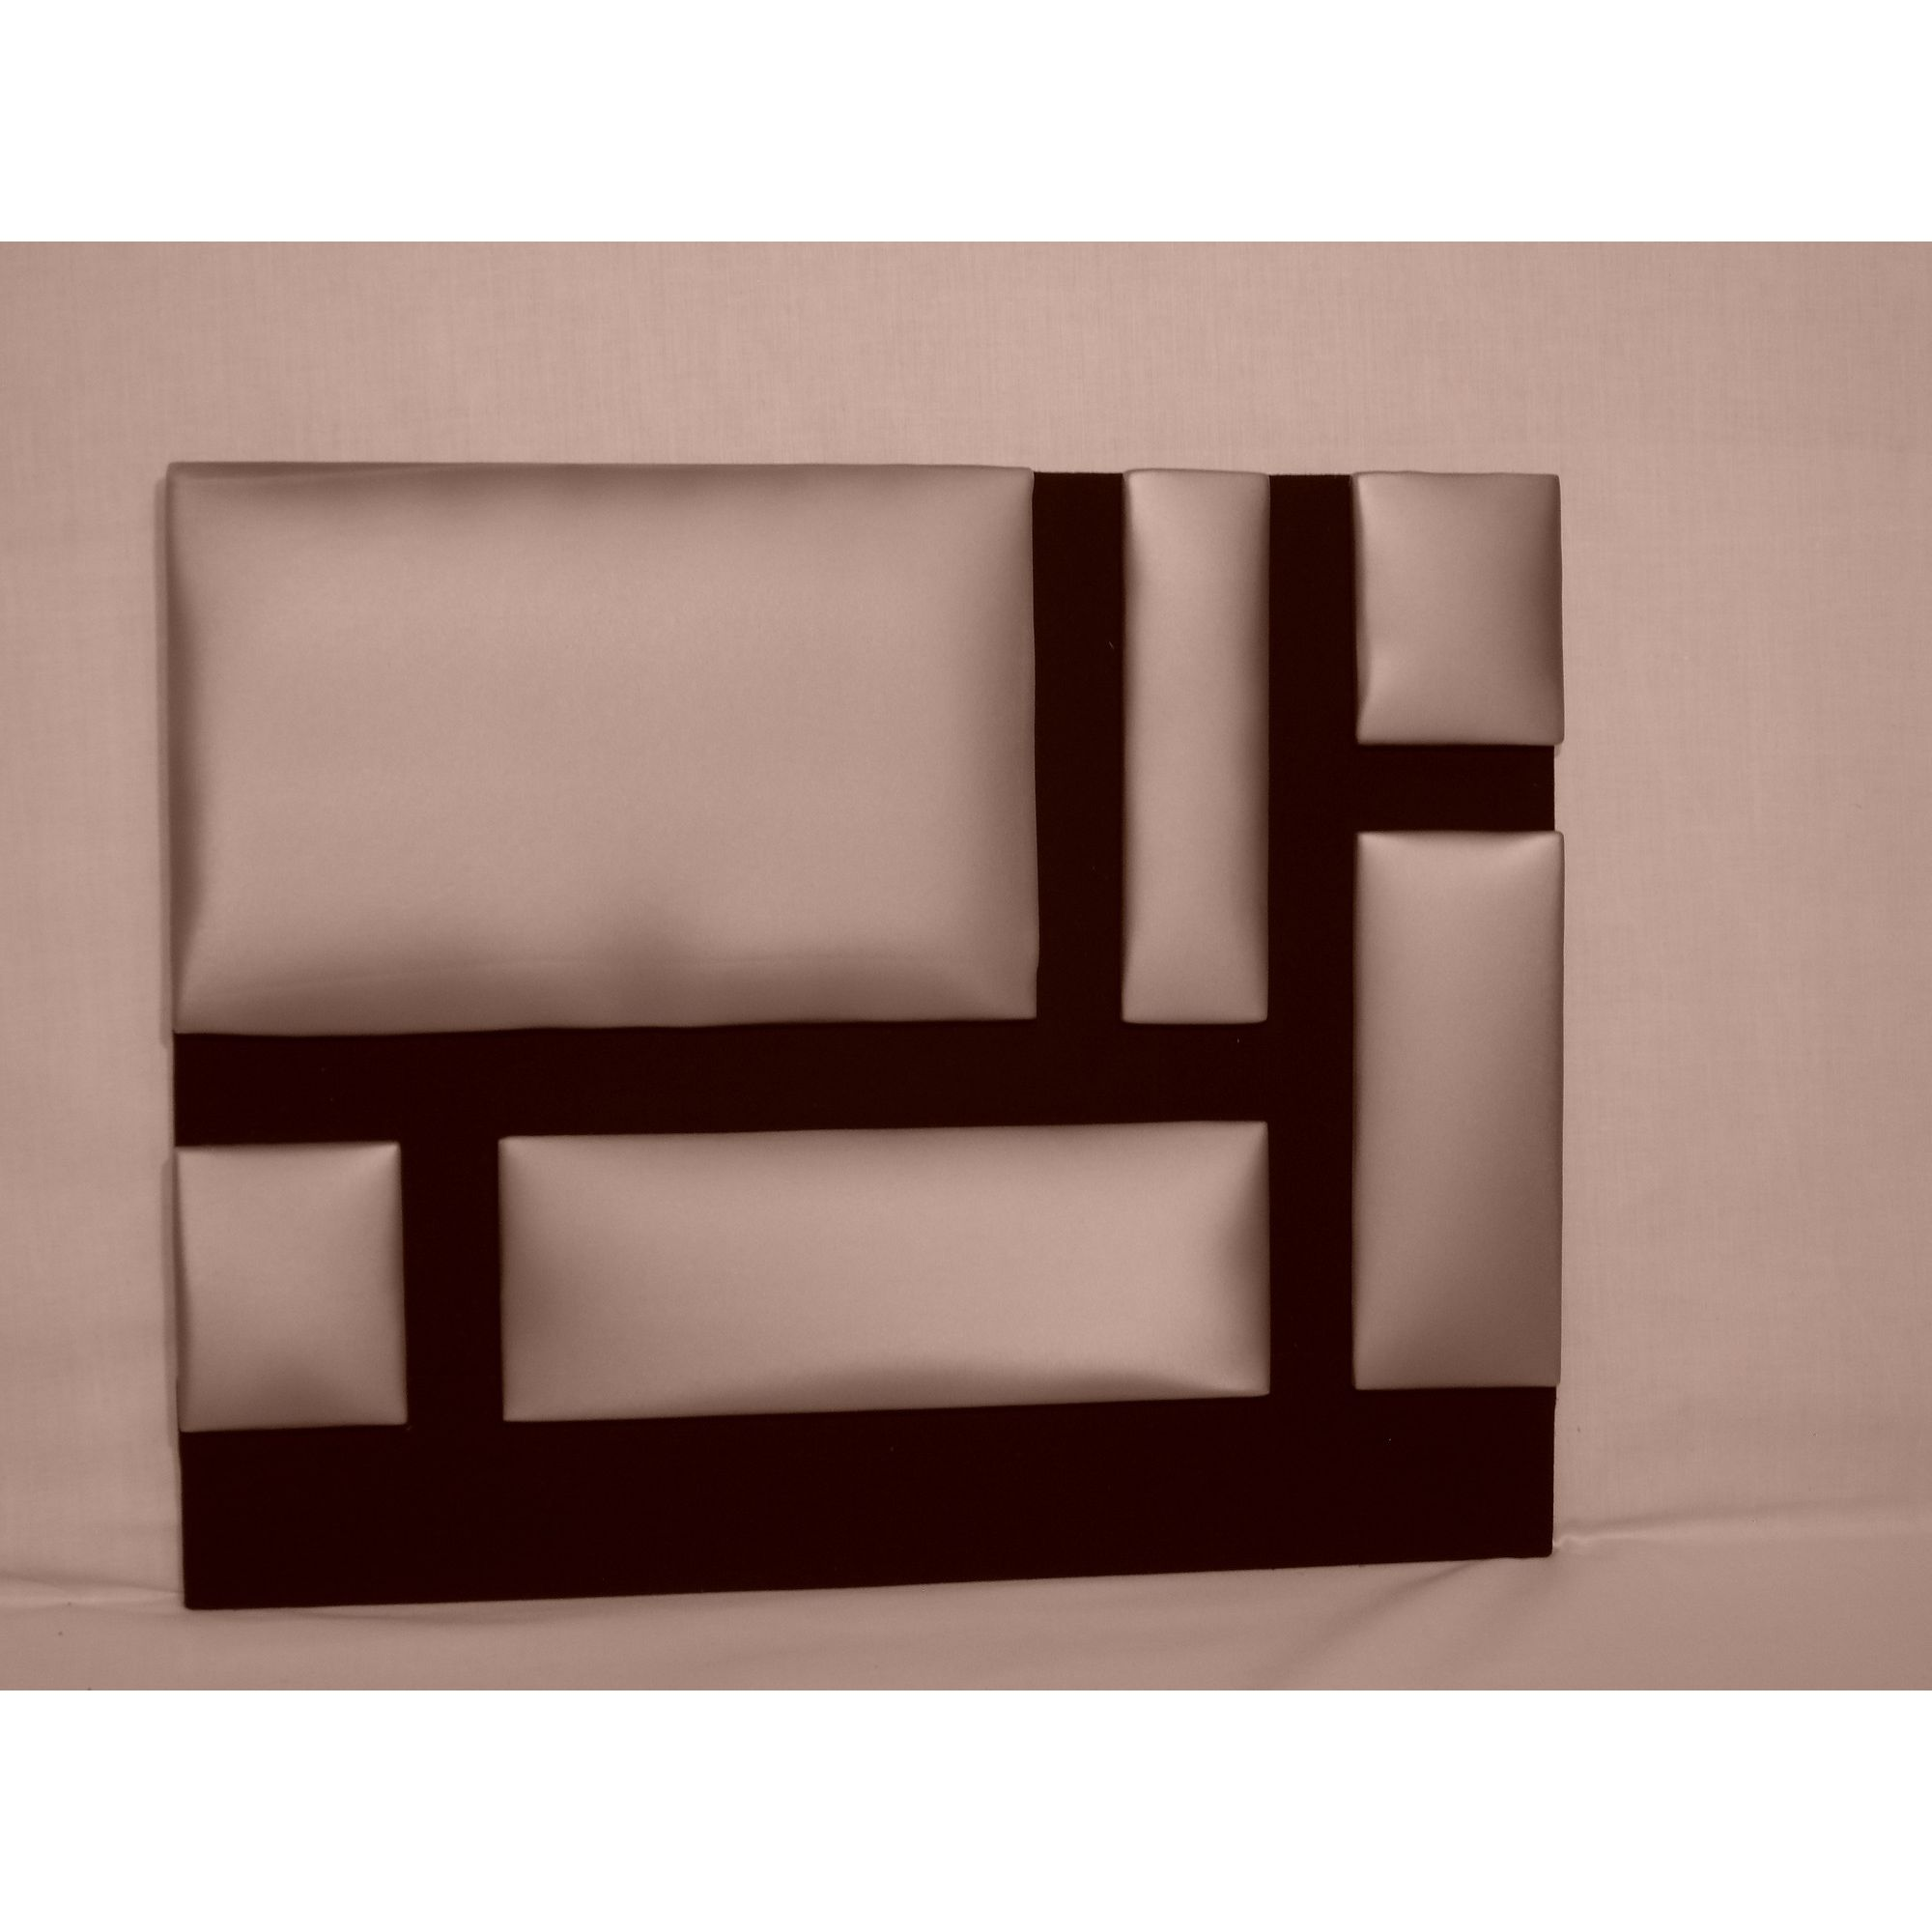 Headboard Solutions Mondrian Headboard - Single - Chenille Soft Anthracite at Tesco Direct